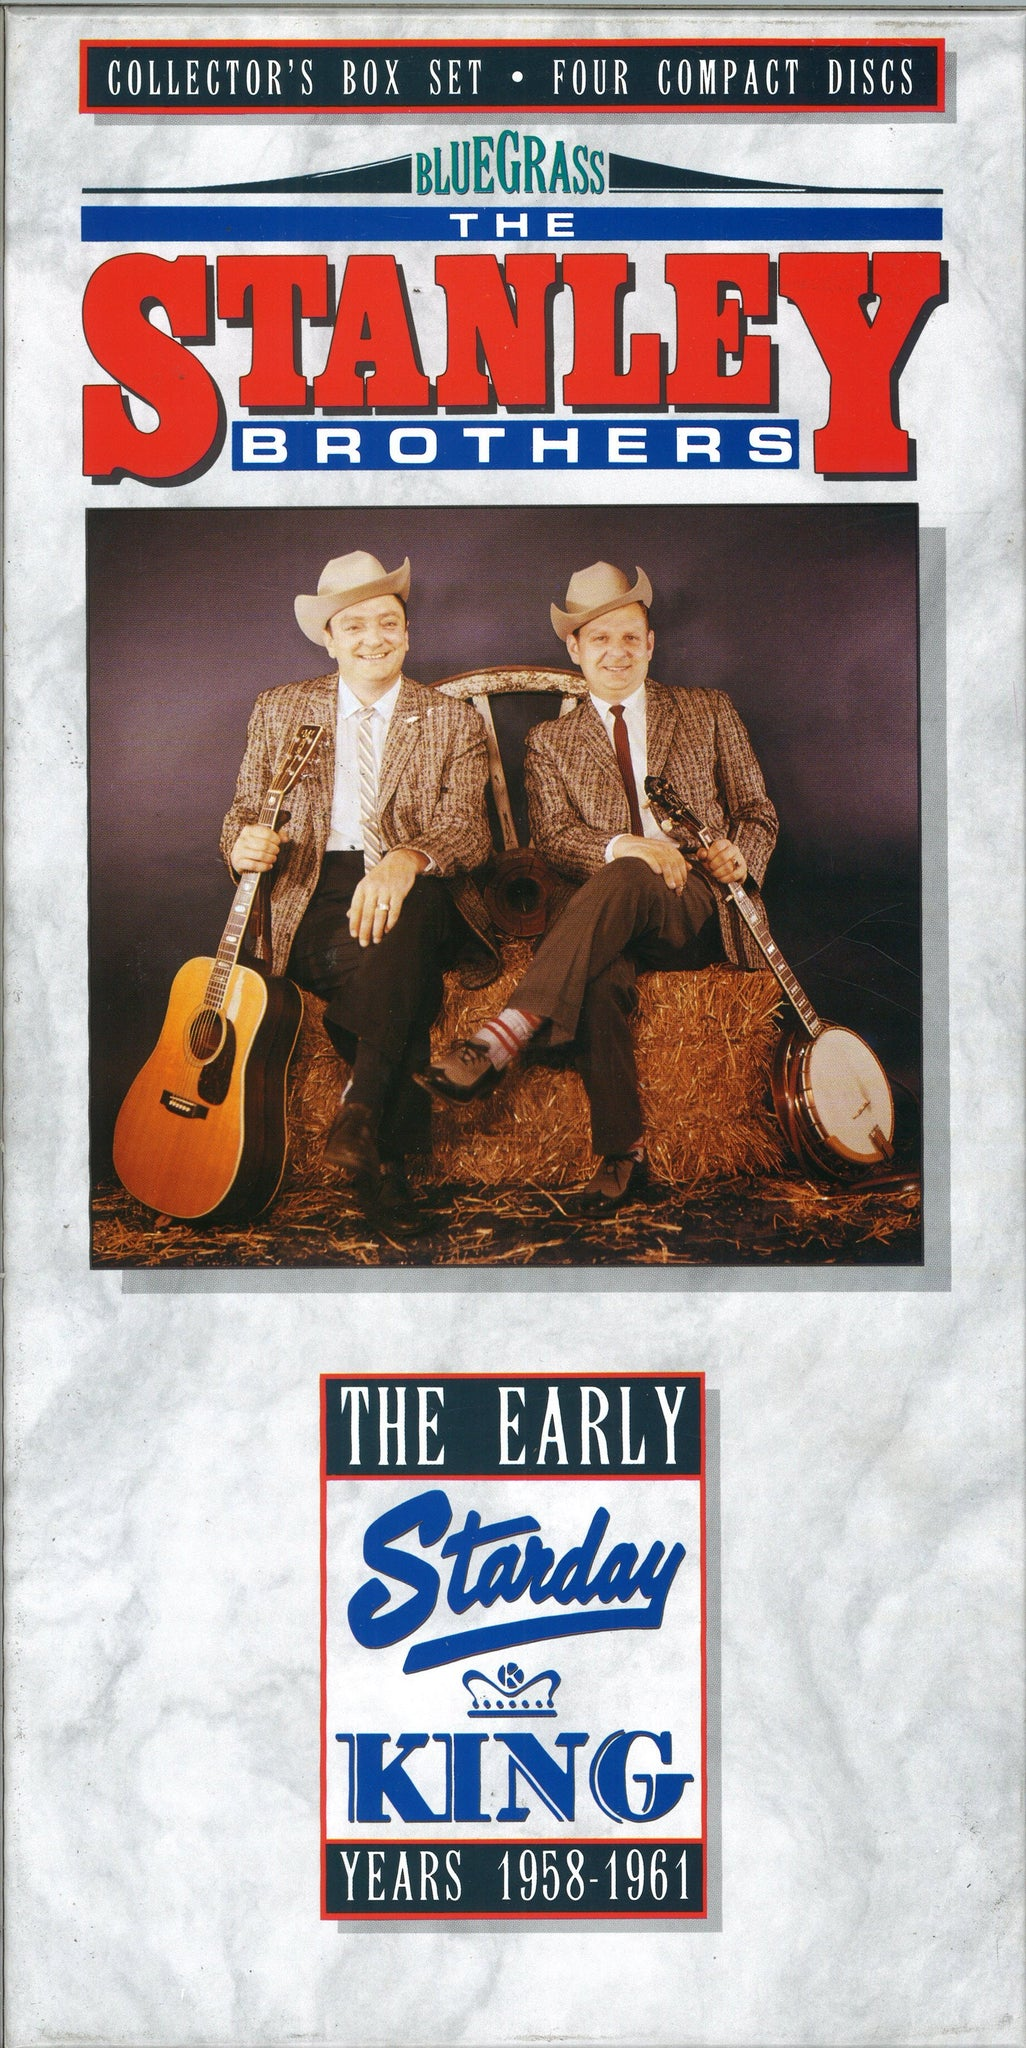 The Stanley Brothers The Early Starday King Years 1958-1961: 4 CD Set